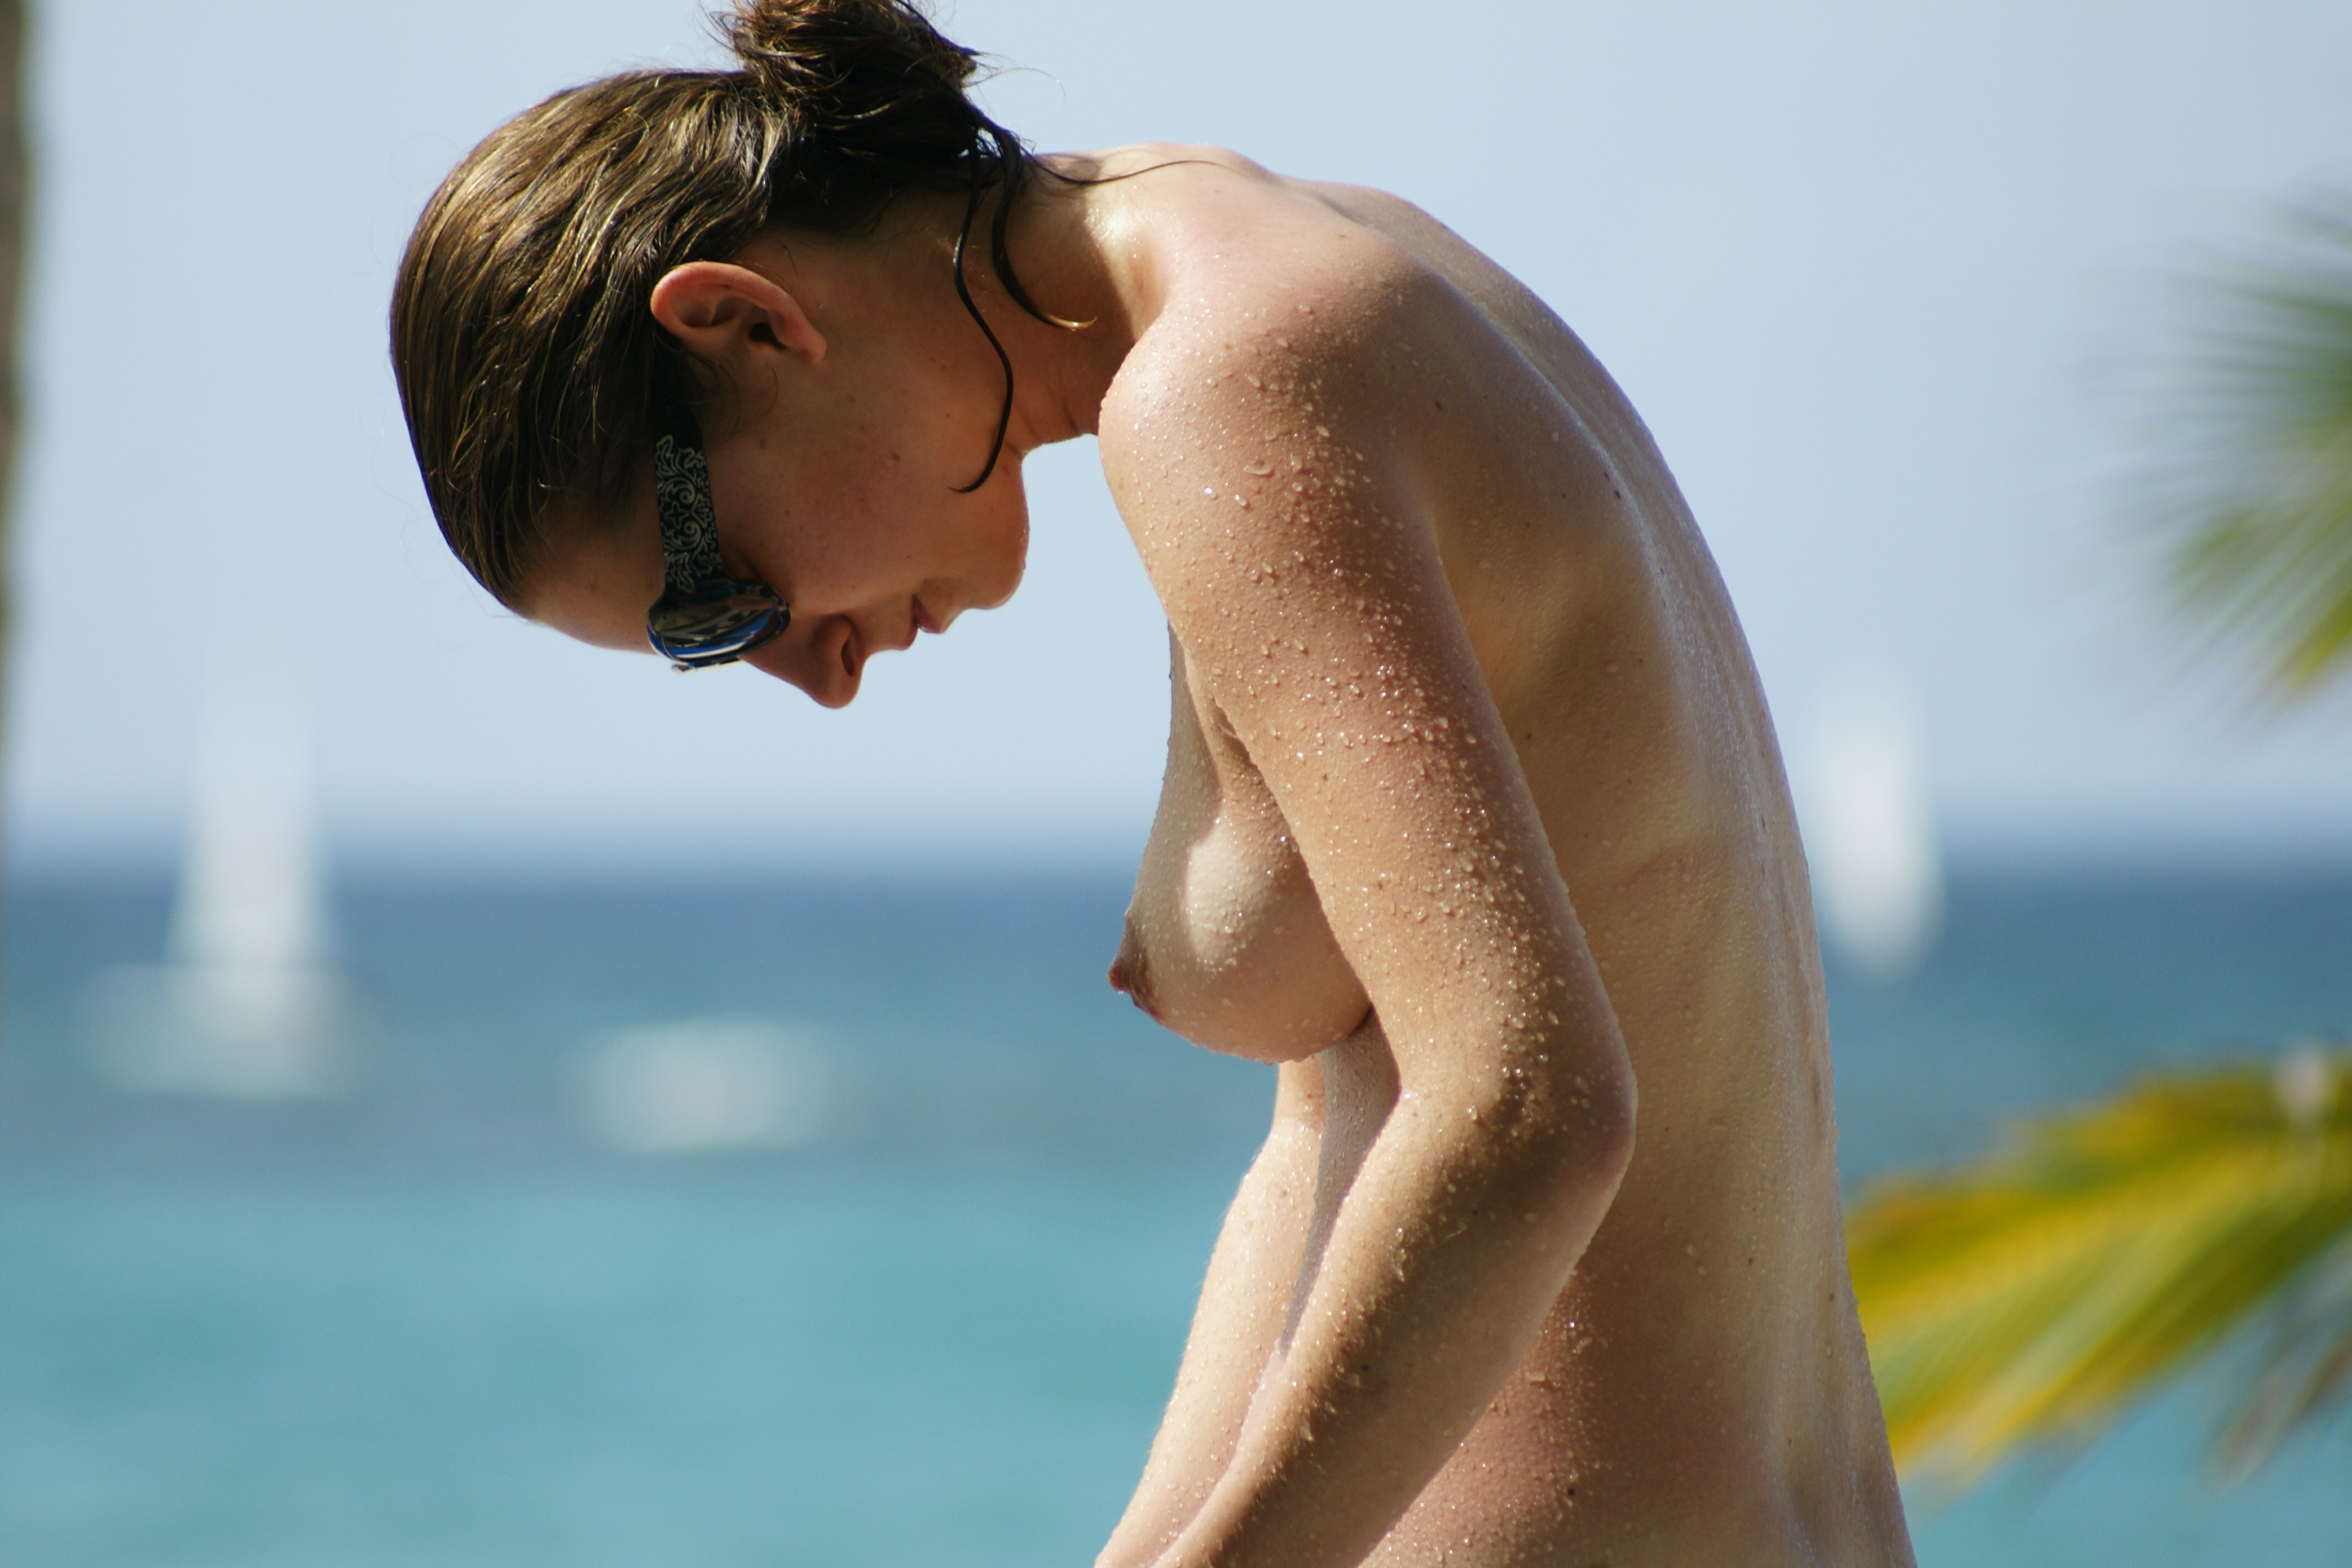 nudists-girls-boobs-beach-topless-mix-vol7-90